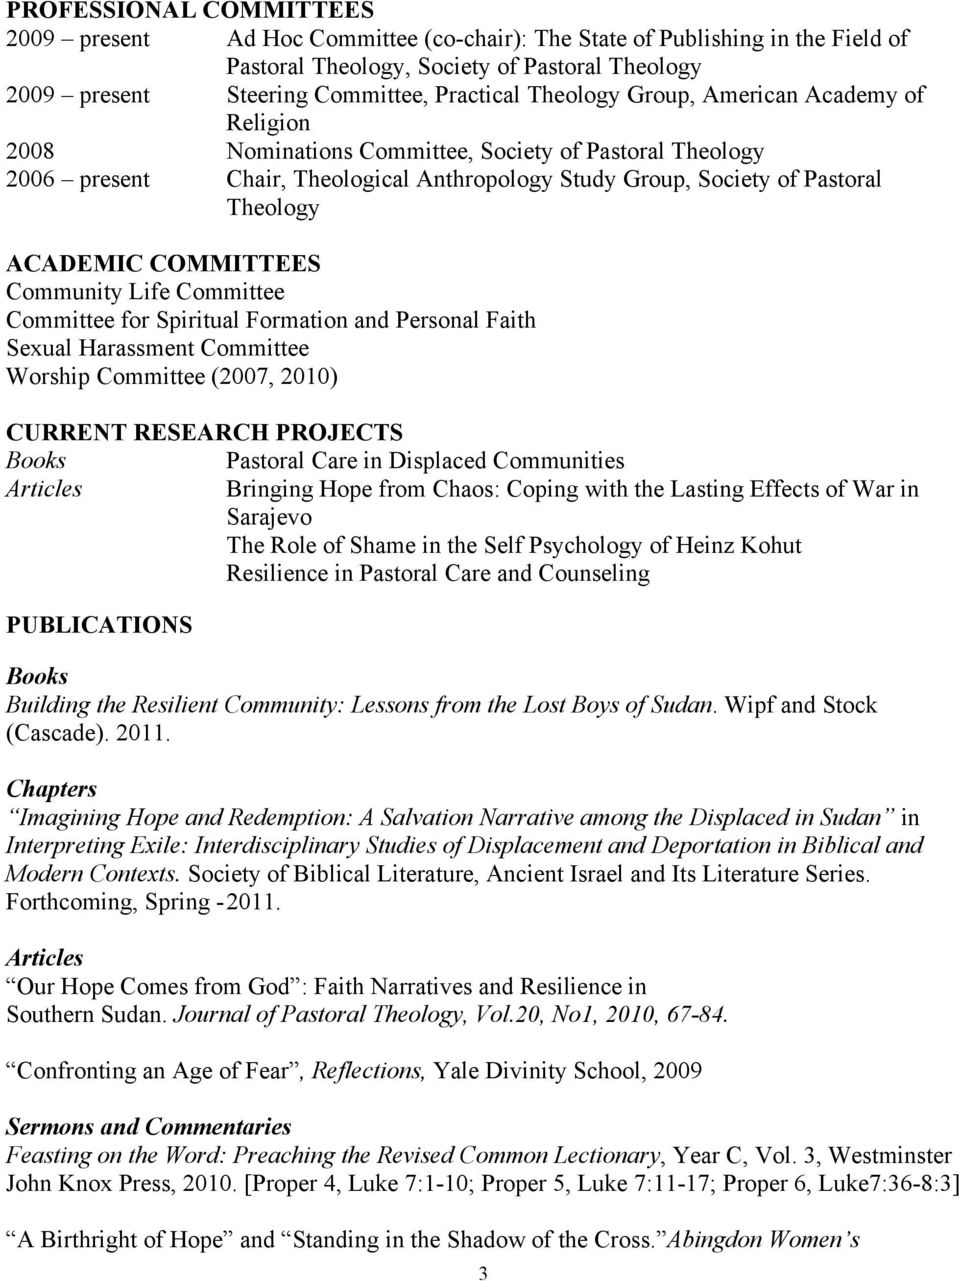 essay on intercultural communication competence model